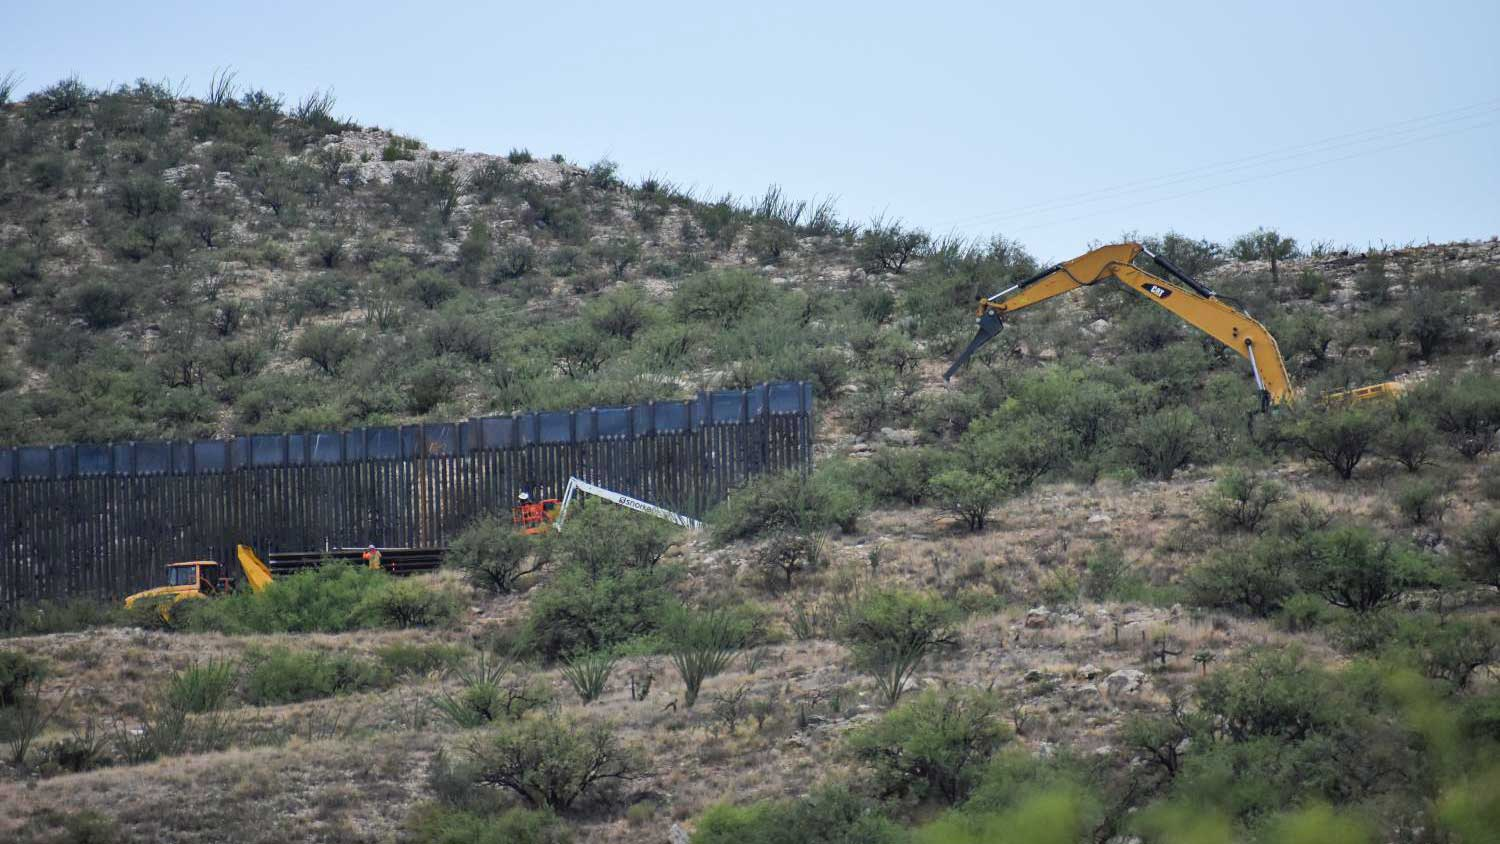 Thirty-foot-high border wall was installed along the border near Sasabe, Arizona, and Mexico in the summer of 2020.